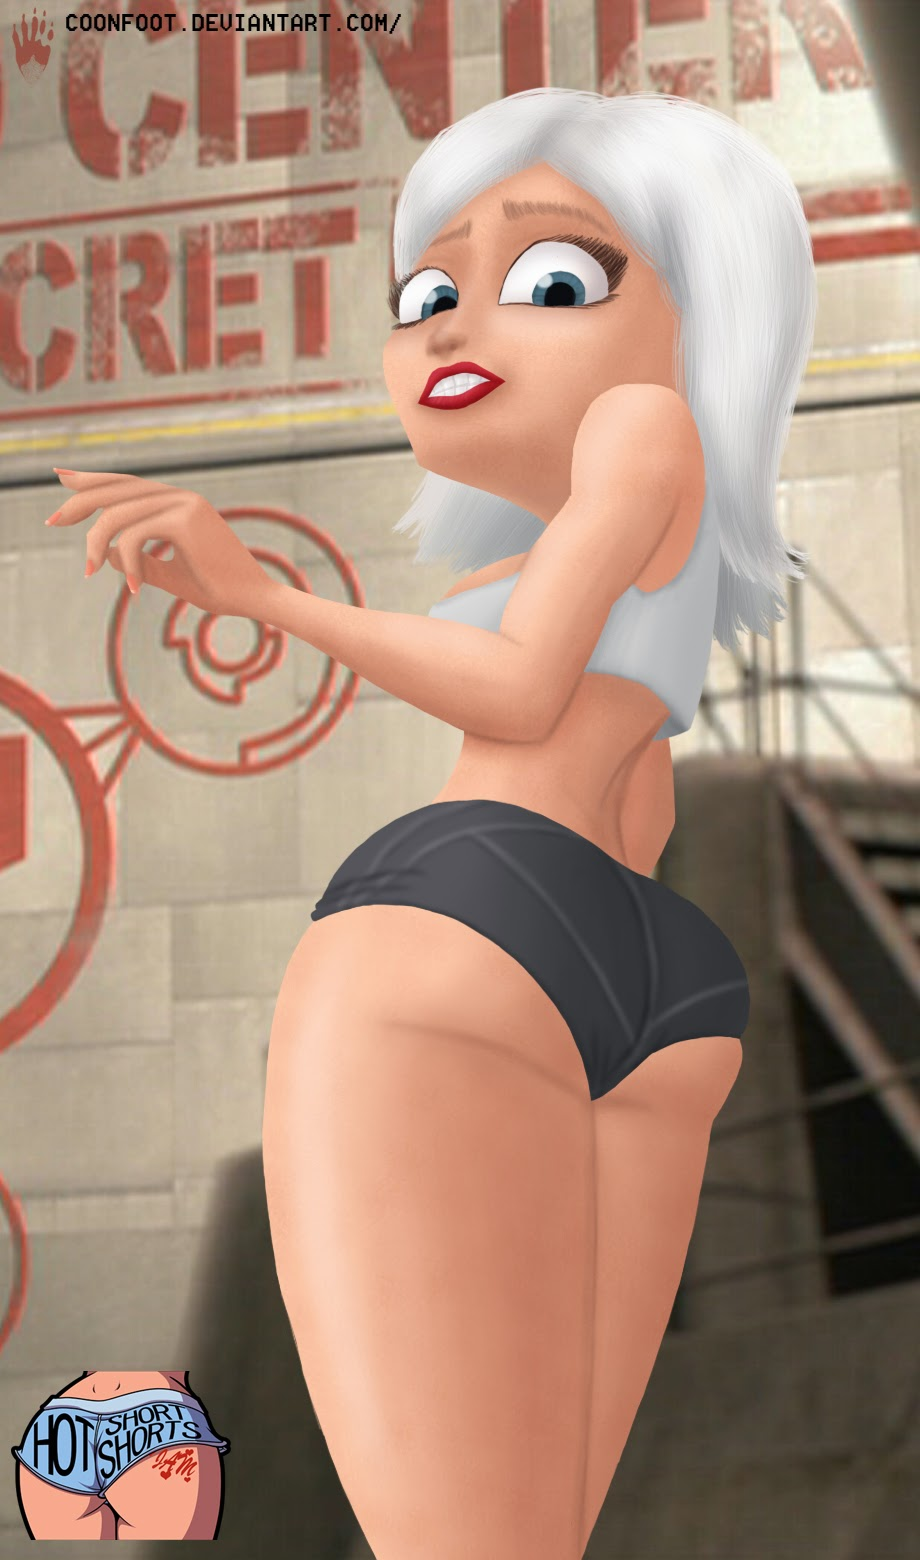 Susan from monsters vs aliens series naked  porn scene